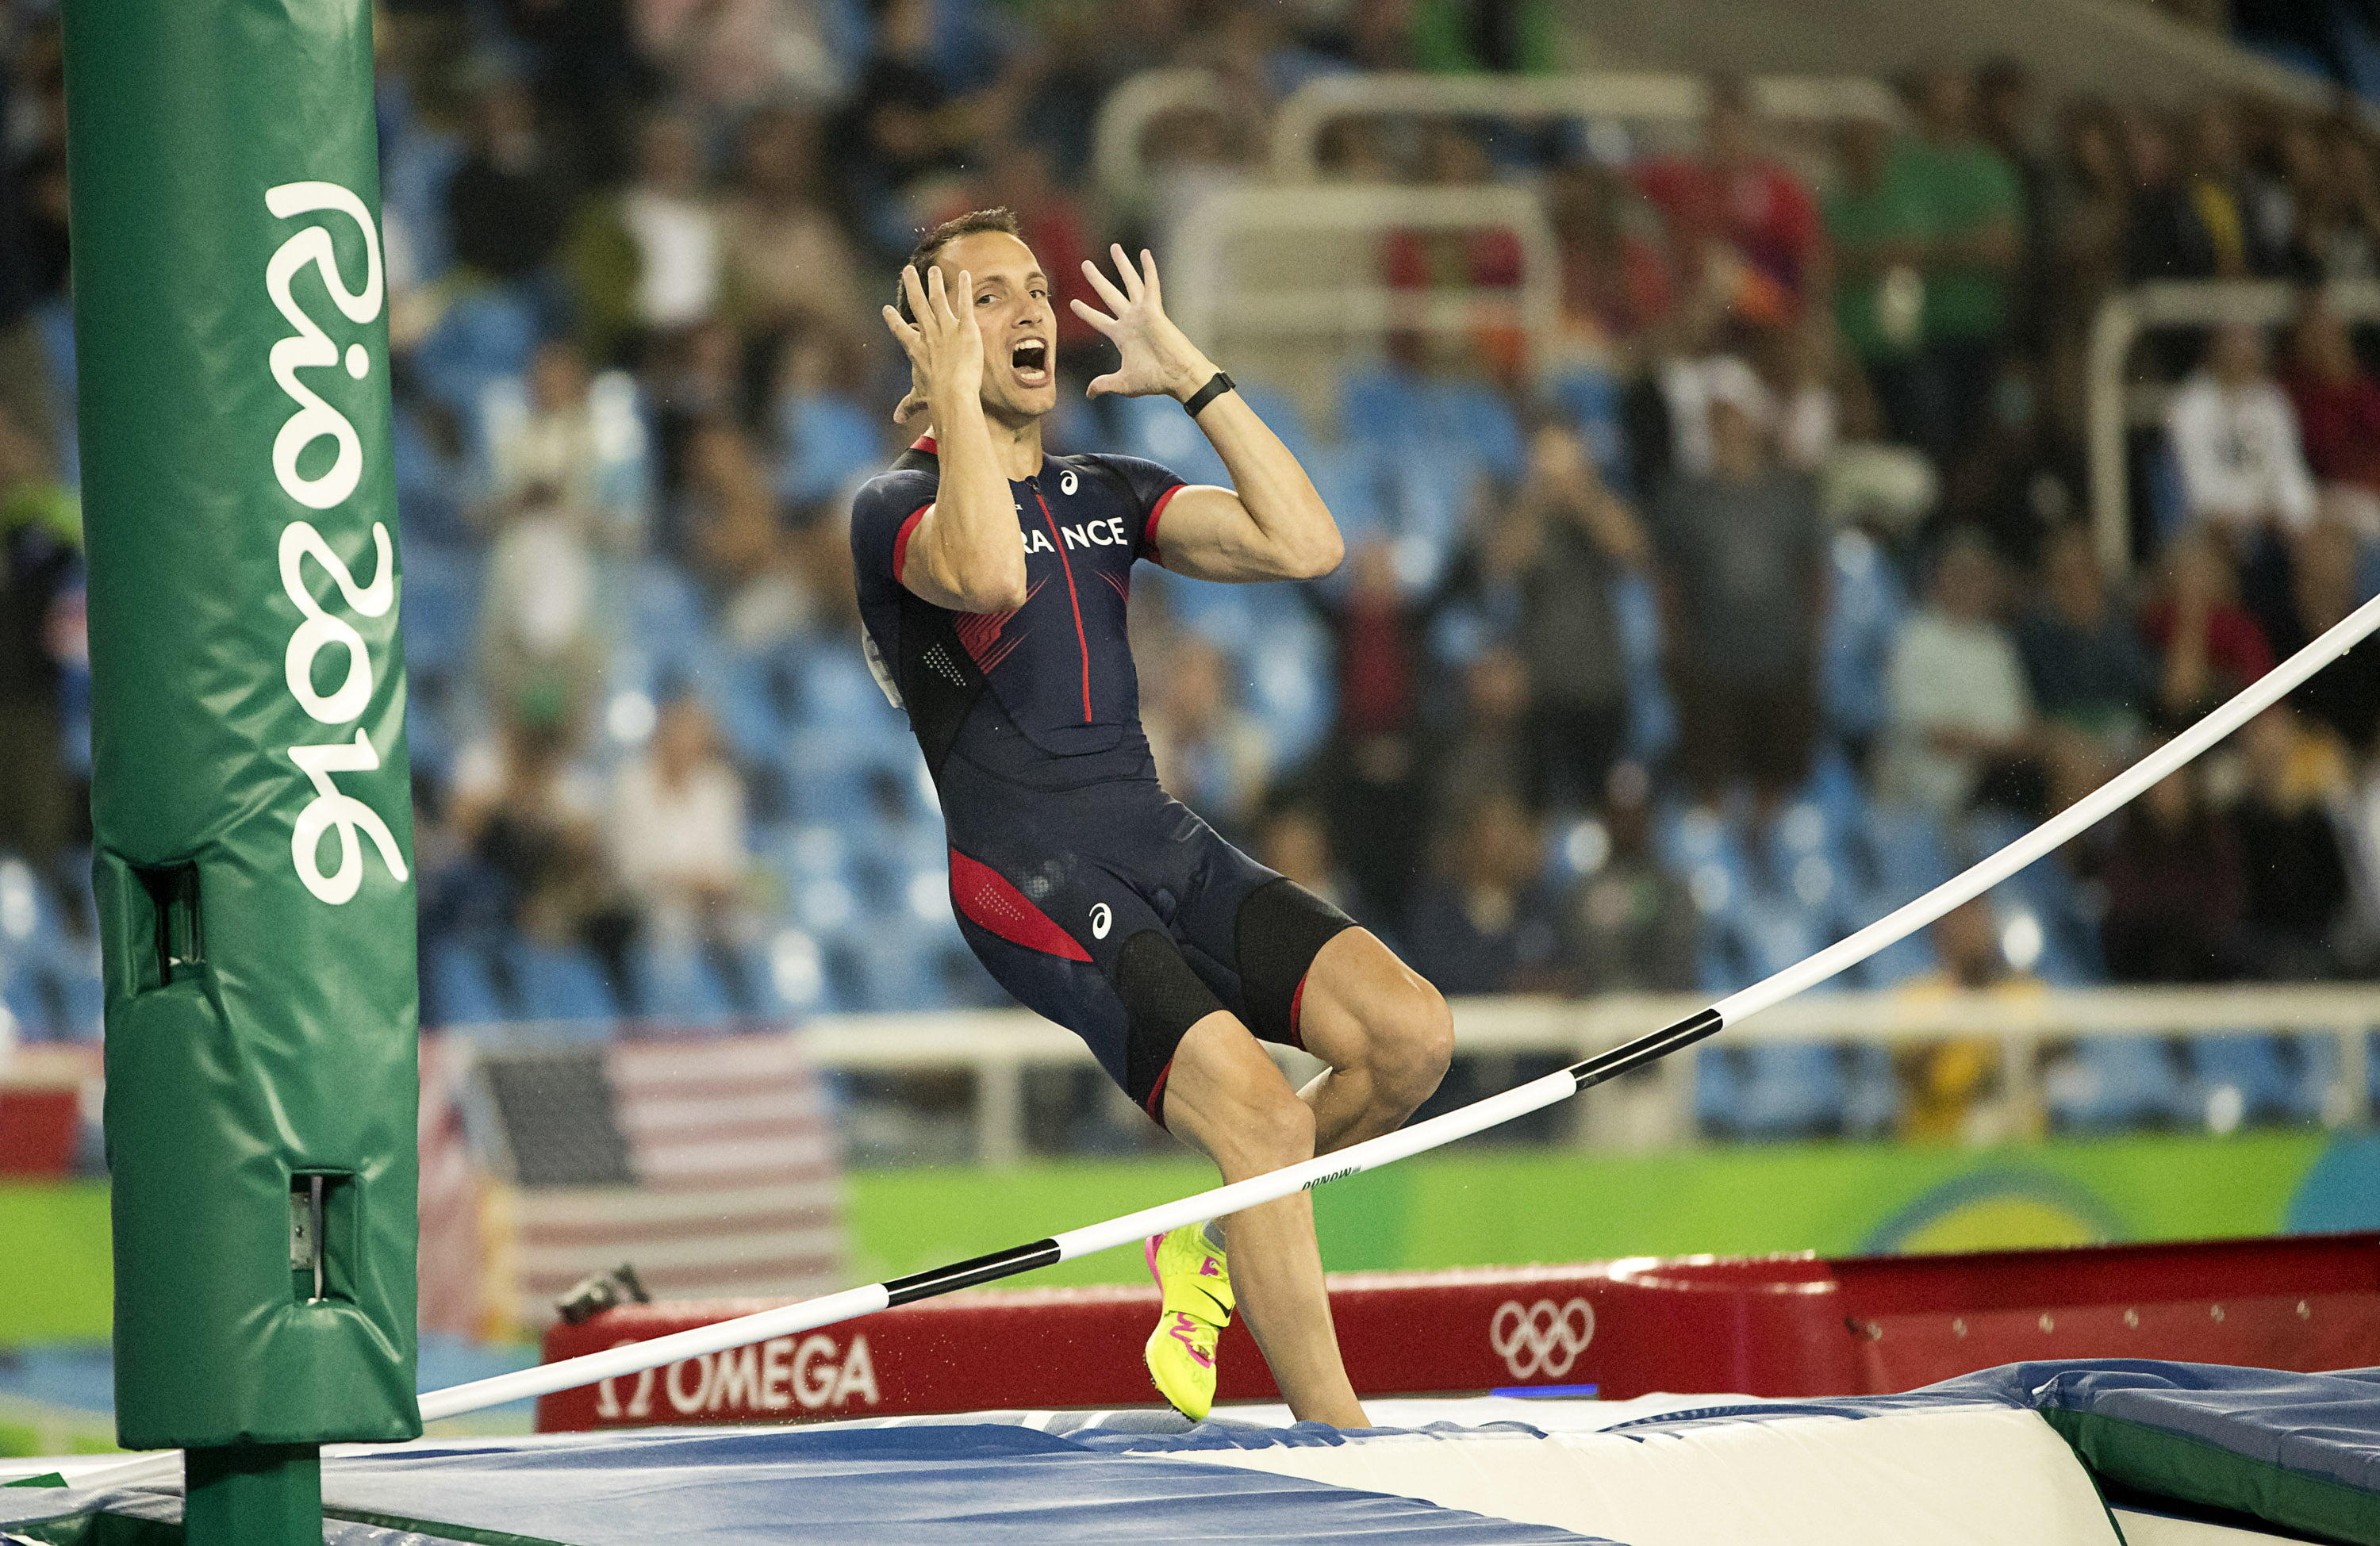 August 15, 2016 - Rio de Janeiro, RJ, Brazil - OLYMPICS ATHLETICS: Renaud Lavillenie (FRA) reacts after he misses 6.03 meters in the Men's pole vault final at Olympic Stadium (Engenhão) during the 2016 Rio Summer Olympics games. (Credit Image: © Paul Kitagaki Jr. via ZUMA Wire) FOT. ZUMAPRESS.com / NEWSPIX.PL POLAND ONLY !!! --- Newspix.pl *** Local Caption *** www.newspix.pl mail us: info@newspix.pl call us: 0048 022 23 22 222 --- Polish Picture Agency by Ringier Axel Springer Poland